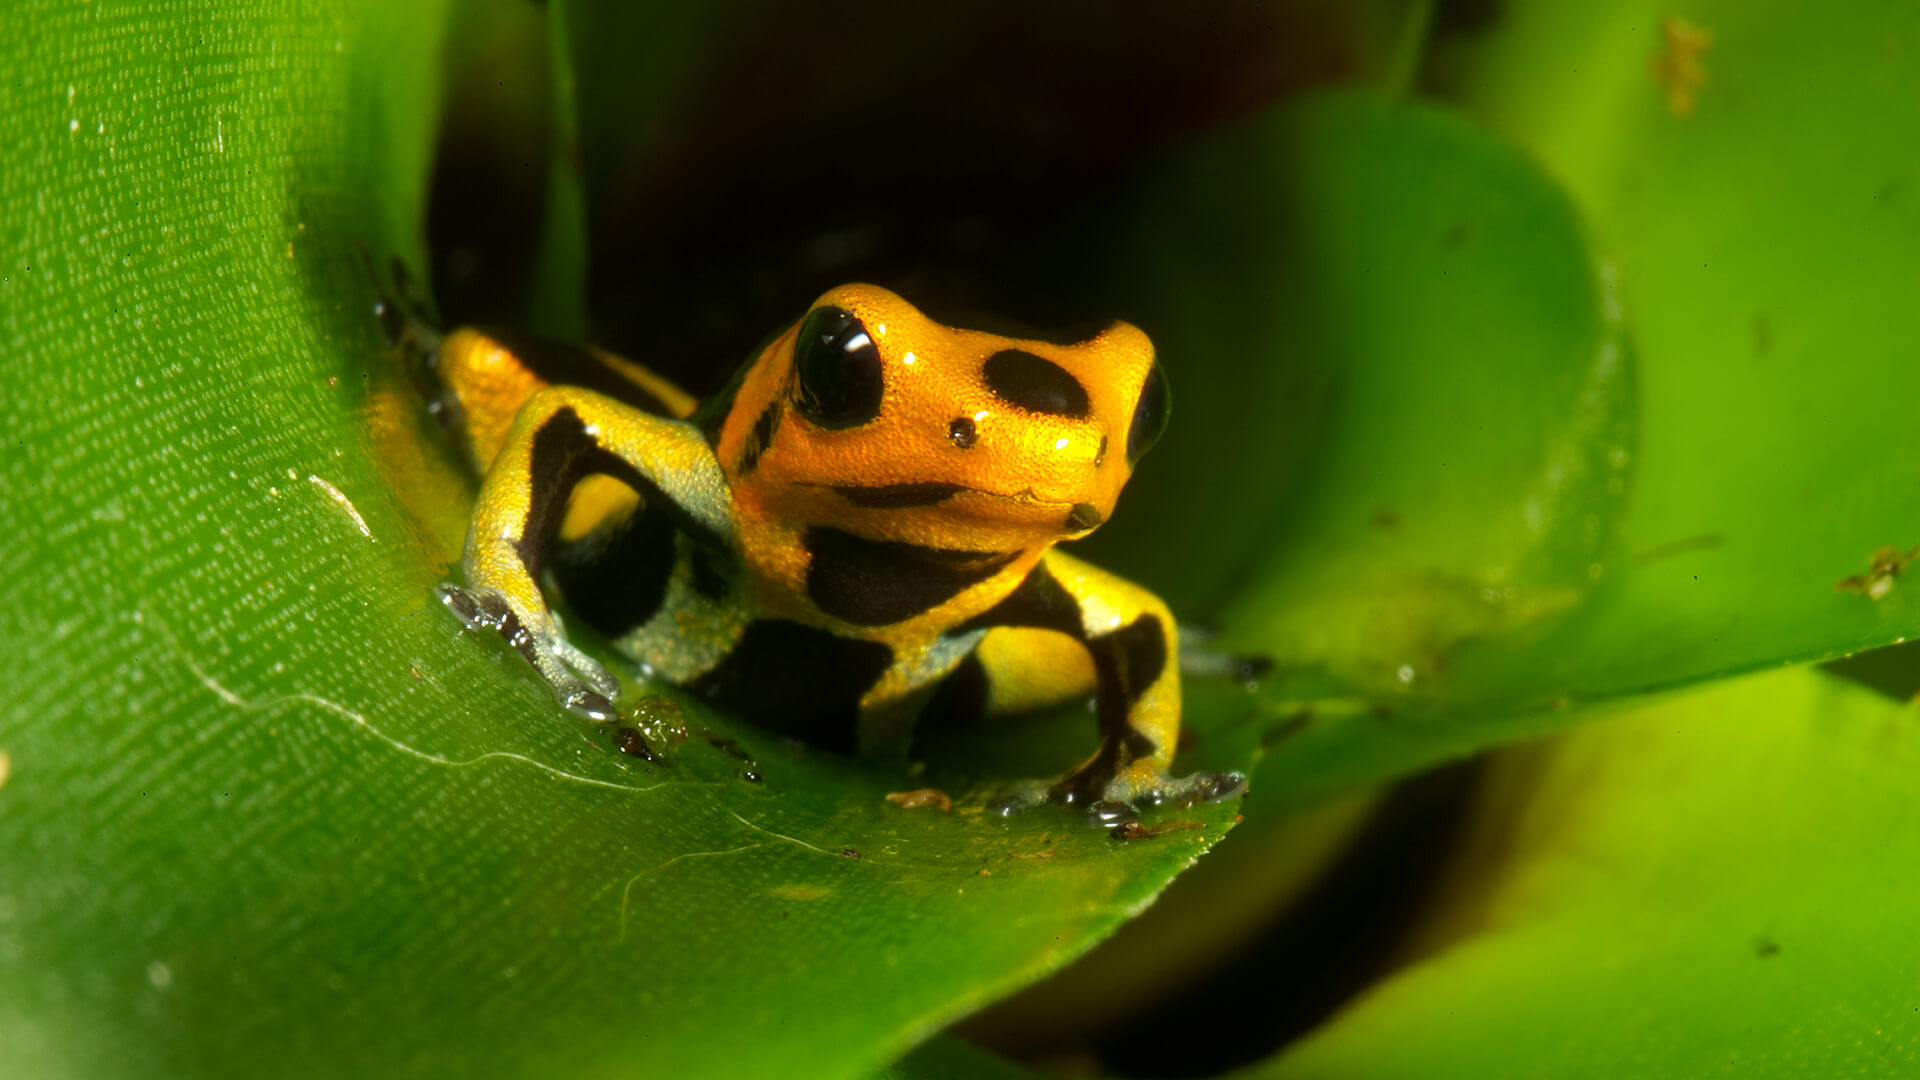 Cute Fish Wallpaper Hd Poison Frog San Diego Zoo Animals Amp Plants